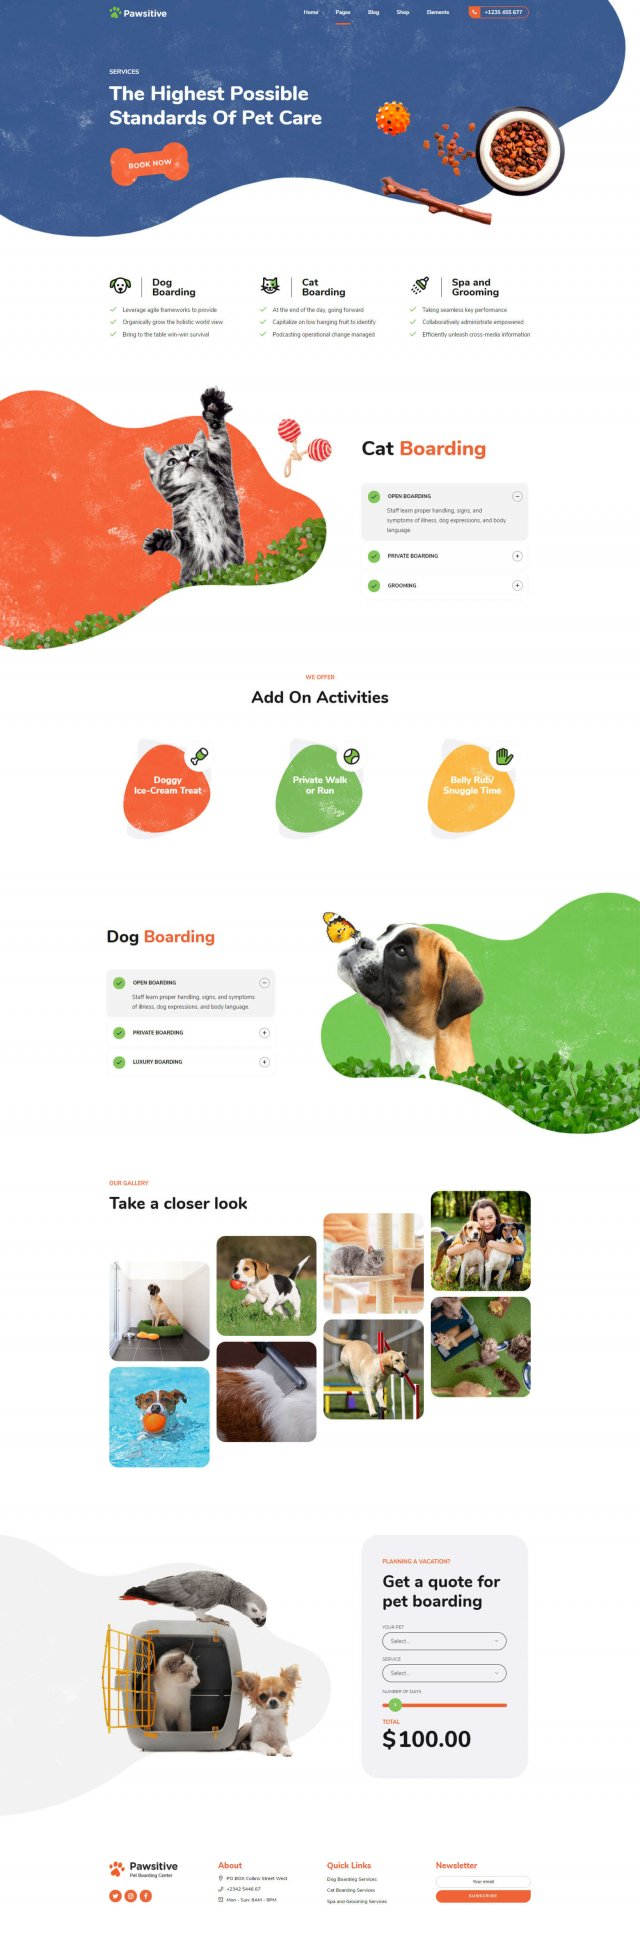 http://pawsitive.bold-themes.com/wp-content/uploads/2019/09/Buddy-Services-640x1937.jpg